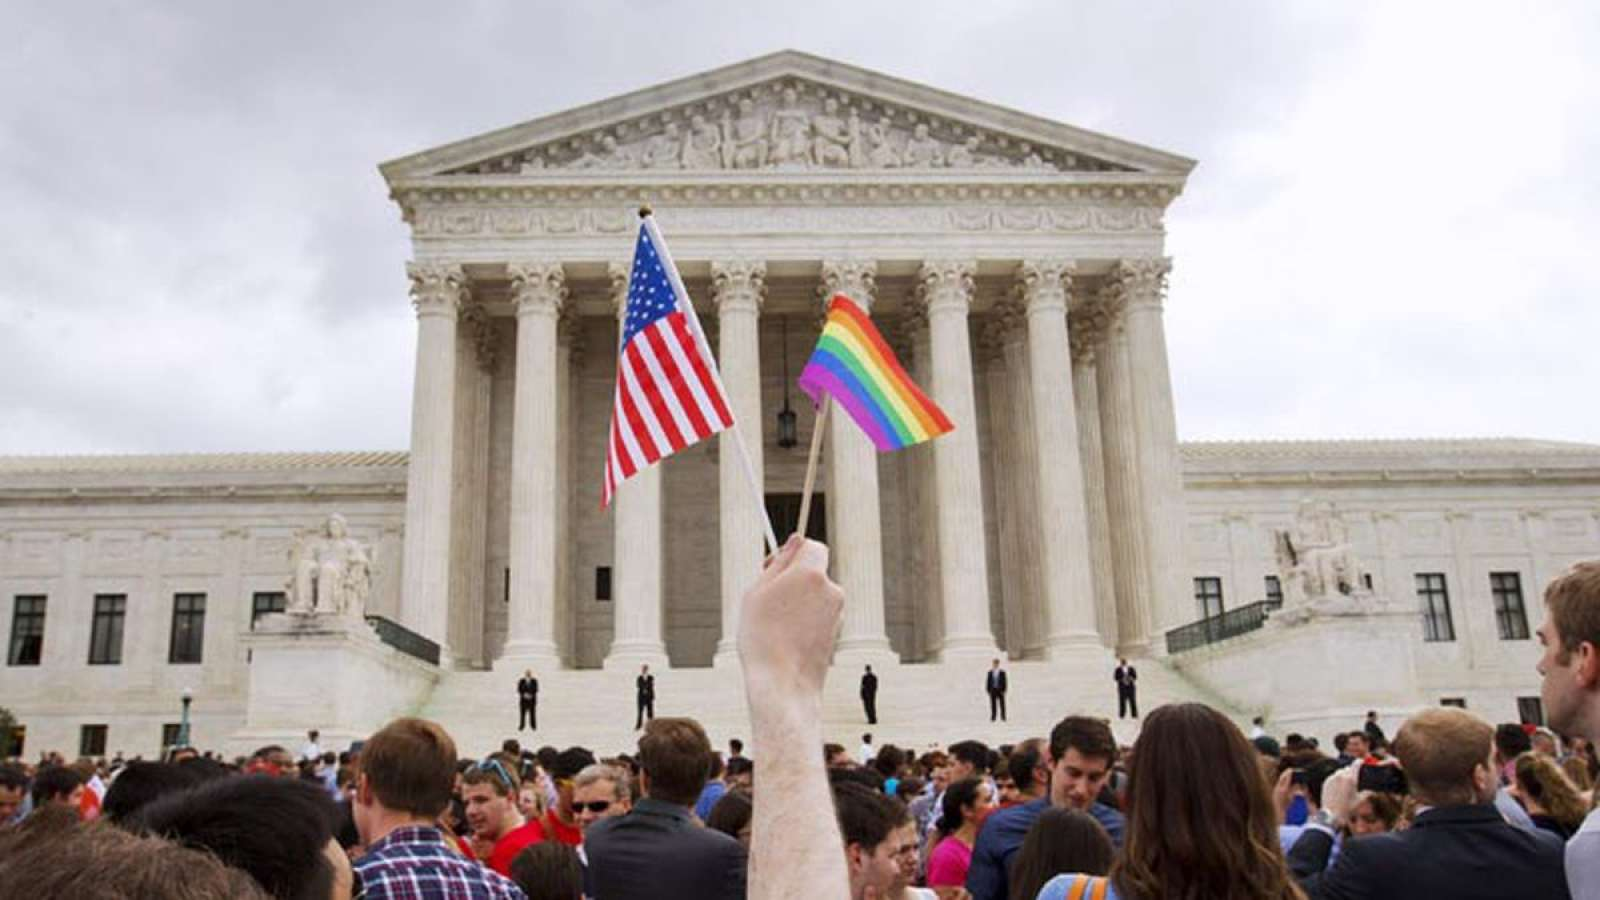 U.S. SUPREME COURT RULES EMPLOYMENT DISCRIMINATION  PROHIBITED AGAINST LGBT EMPLOYEES